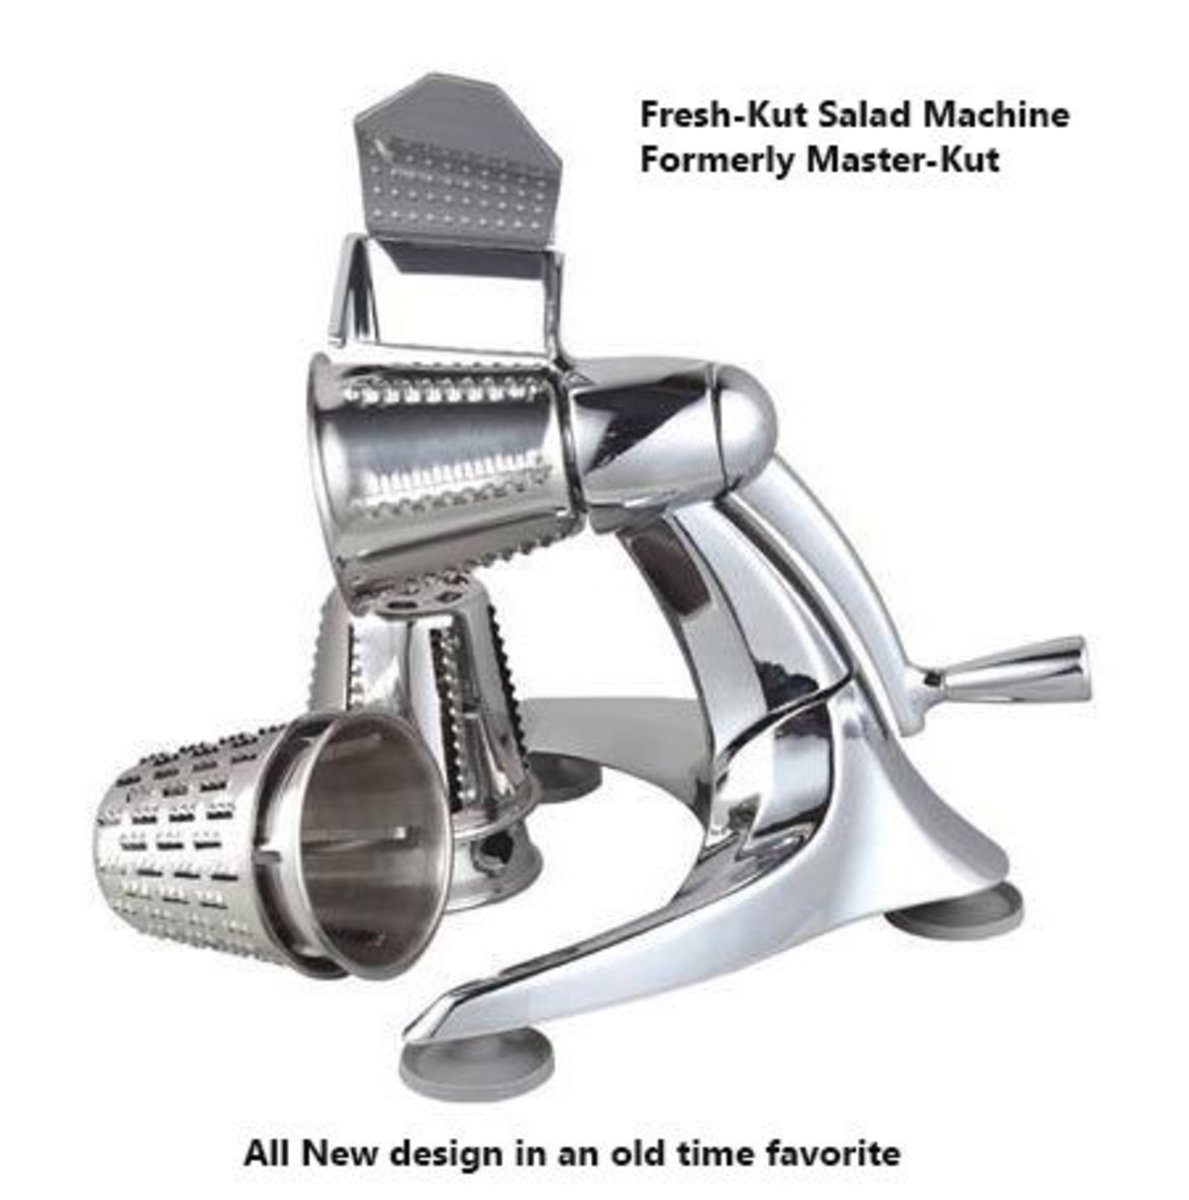 Reproduction stainless hand crank salad maker